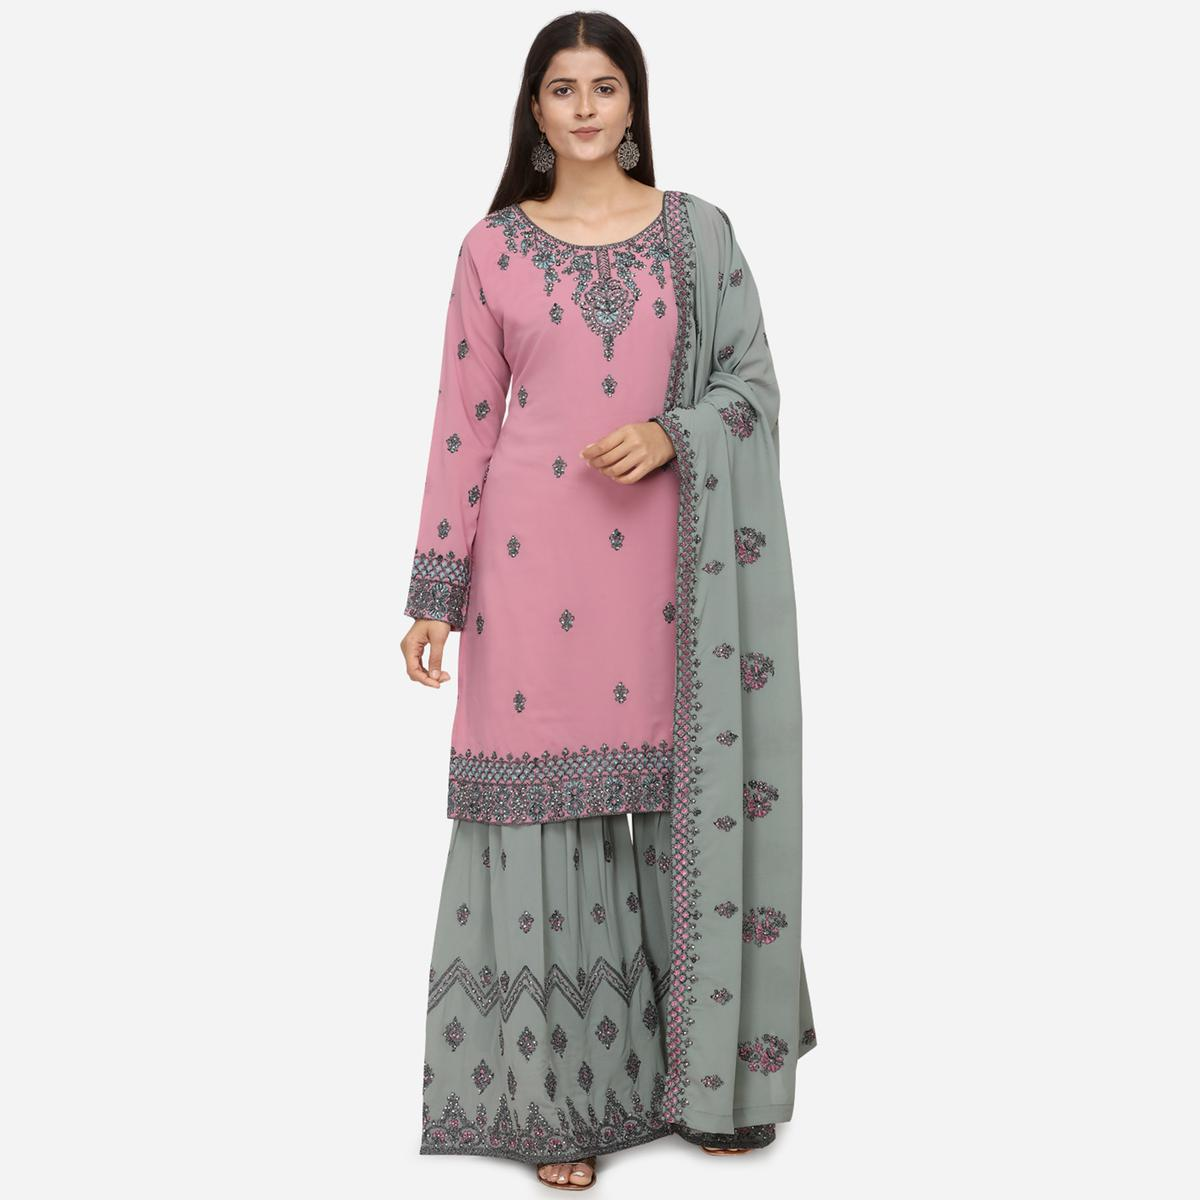 Radiant Pink Colored Partywear Heavy Embroidered Georgette Sharara Style Suit